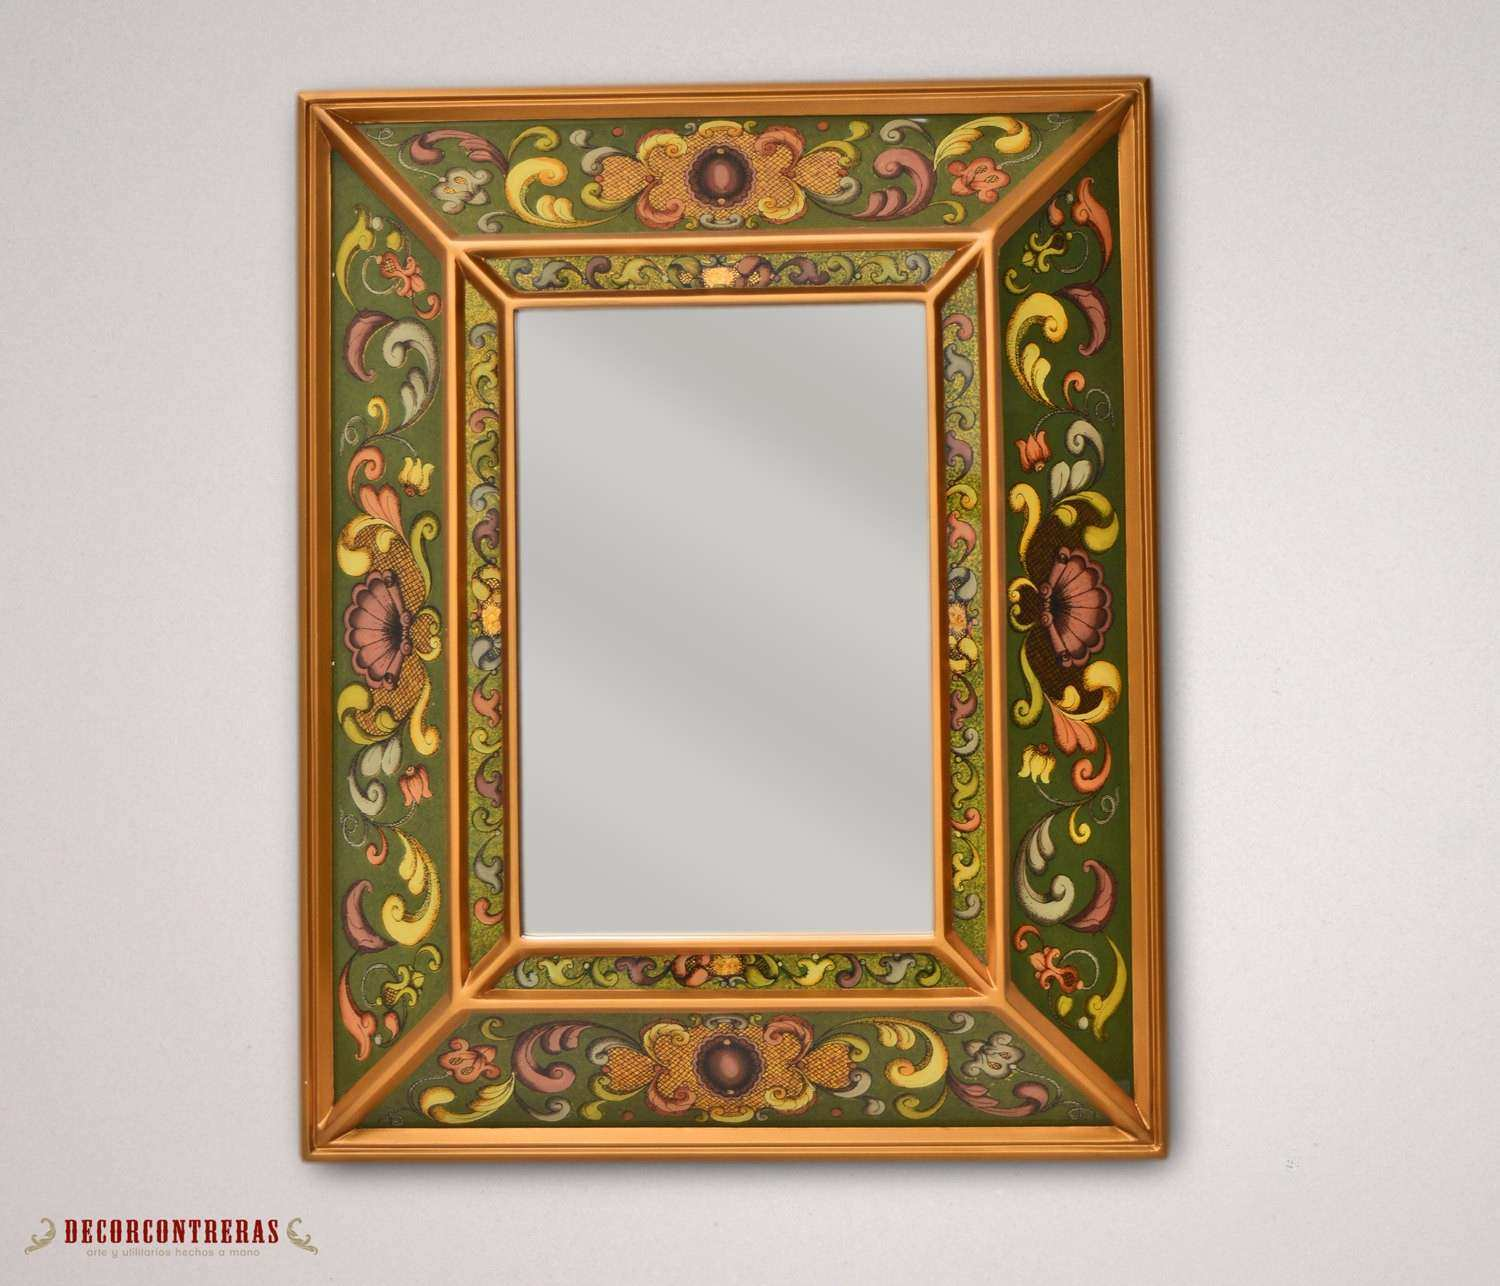 Green & gold Rectangle Wall Mirror Home Decor by